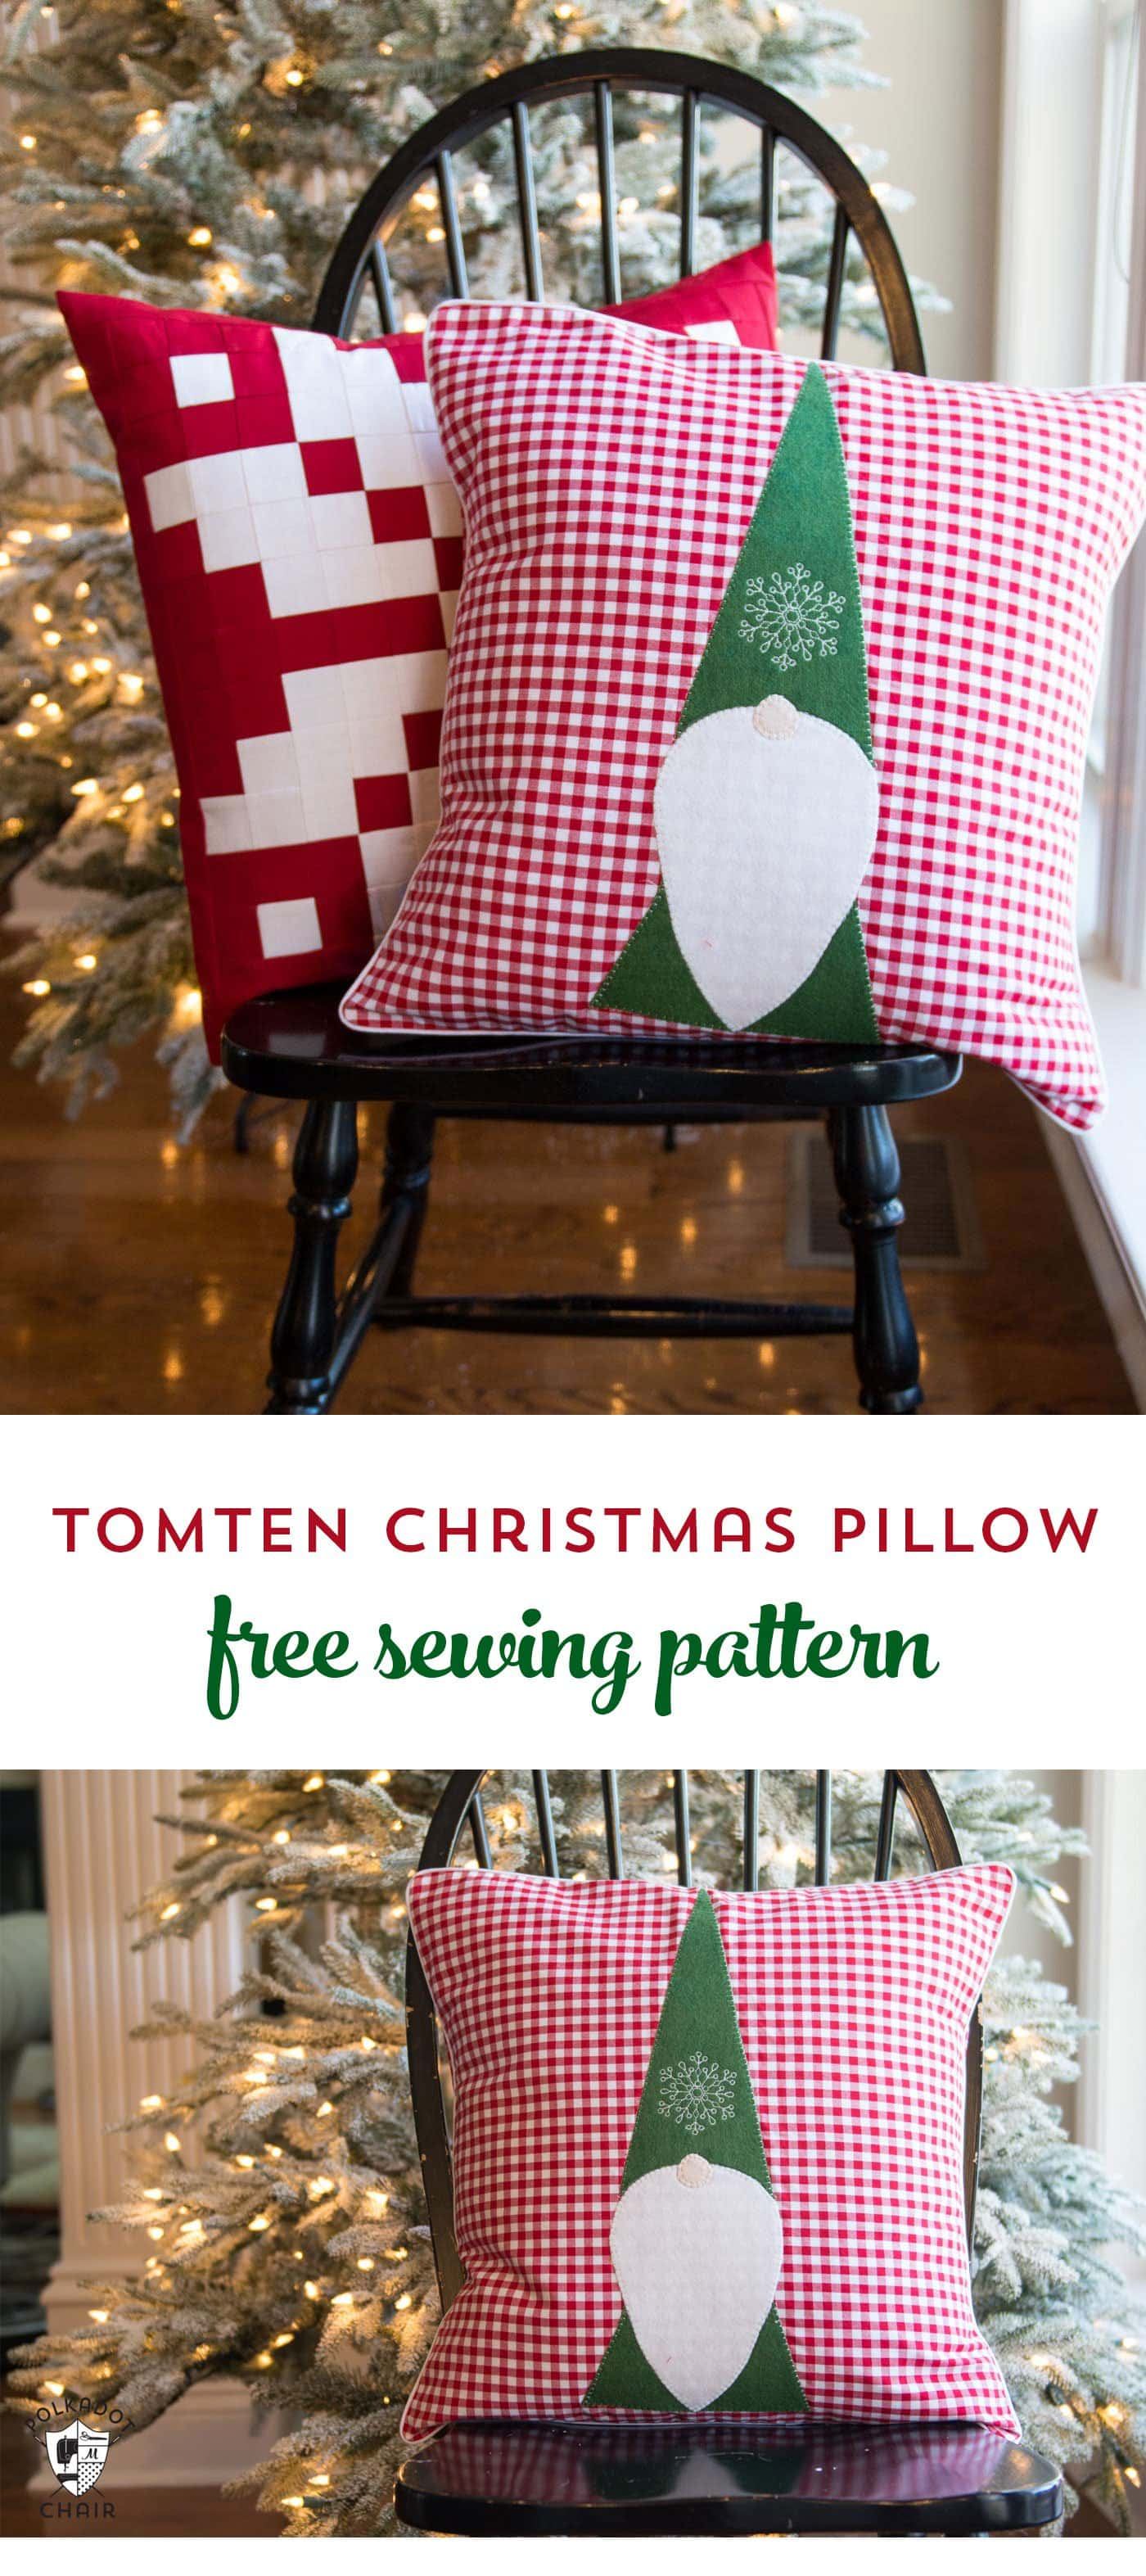 sewing patterns for chair cushions swing india tomte christmas gnome pillow pattern - the polka dot